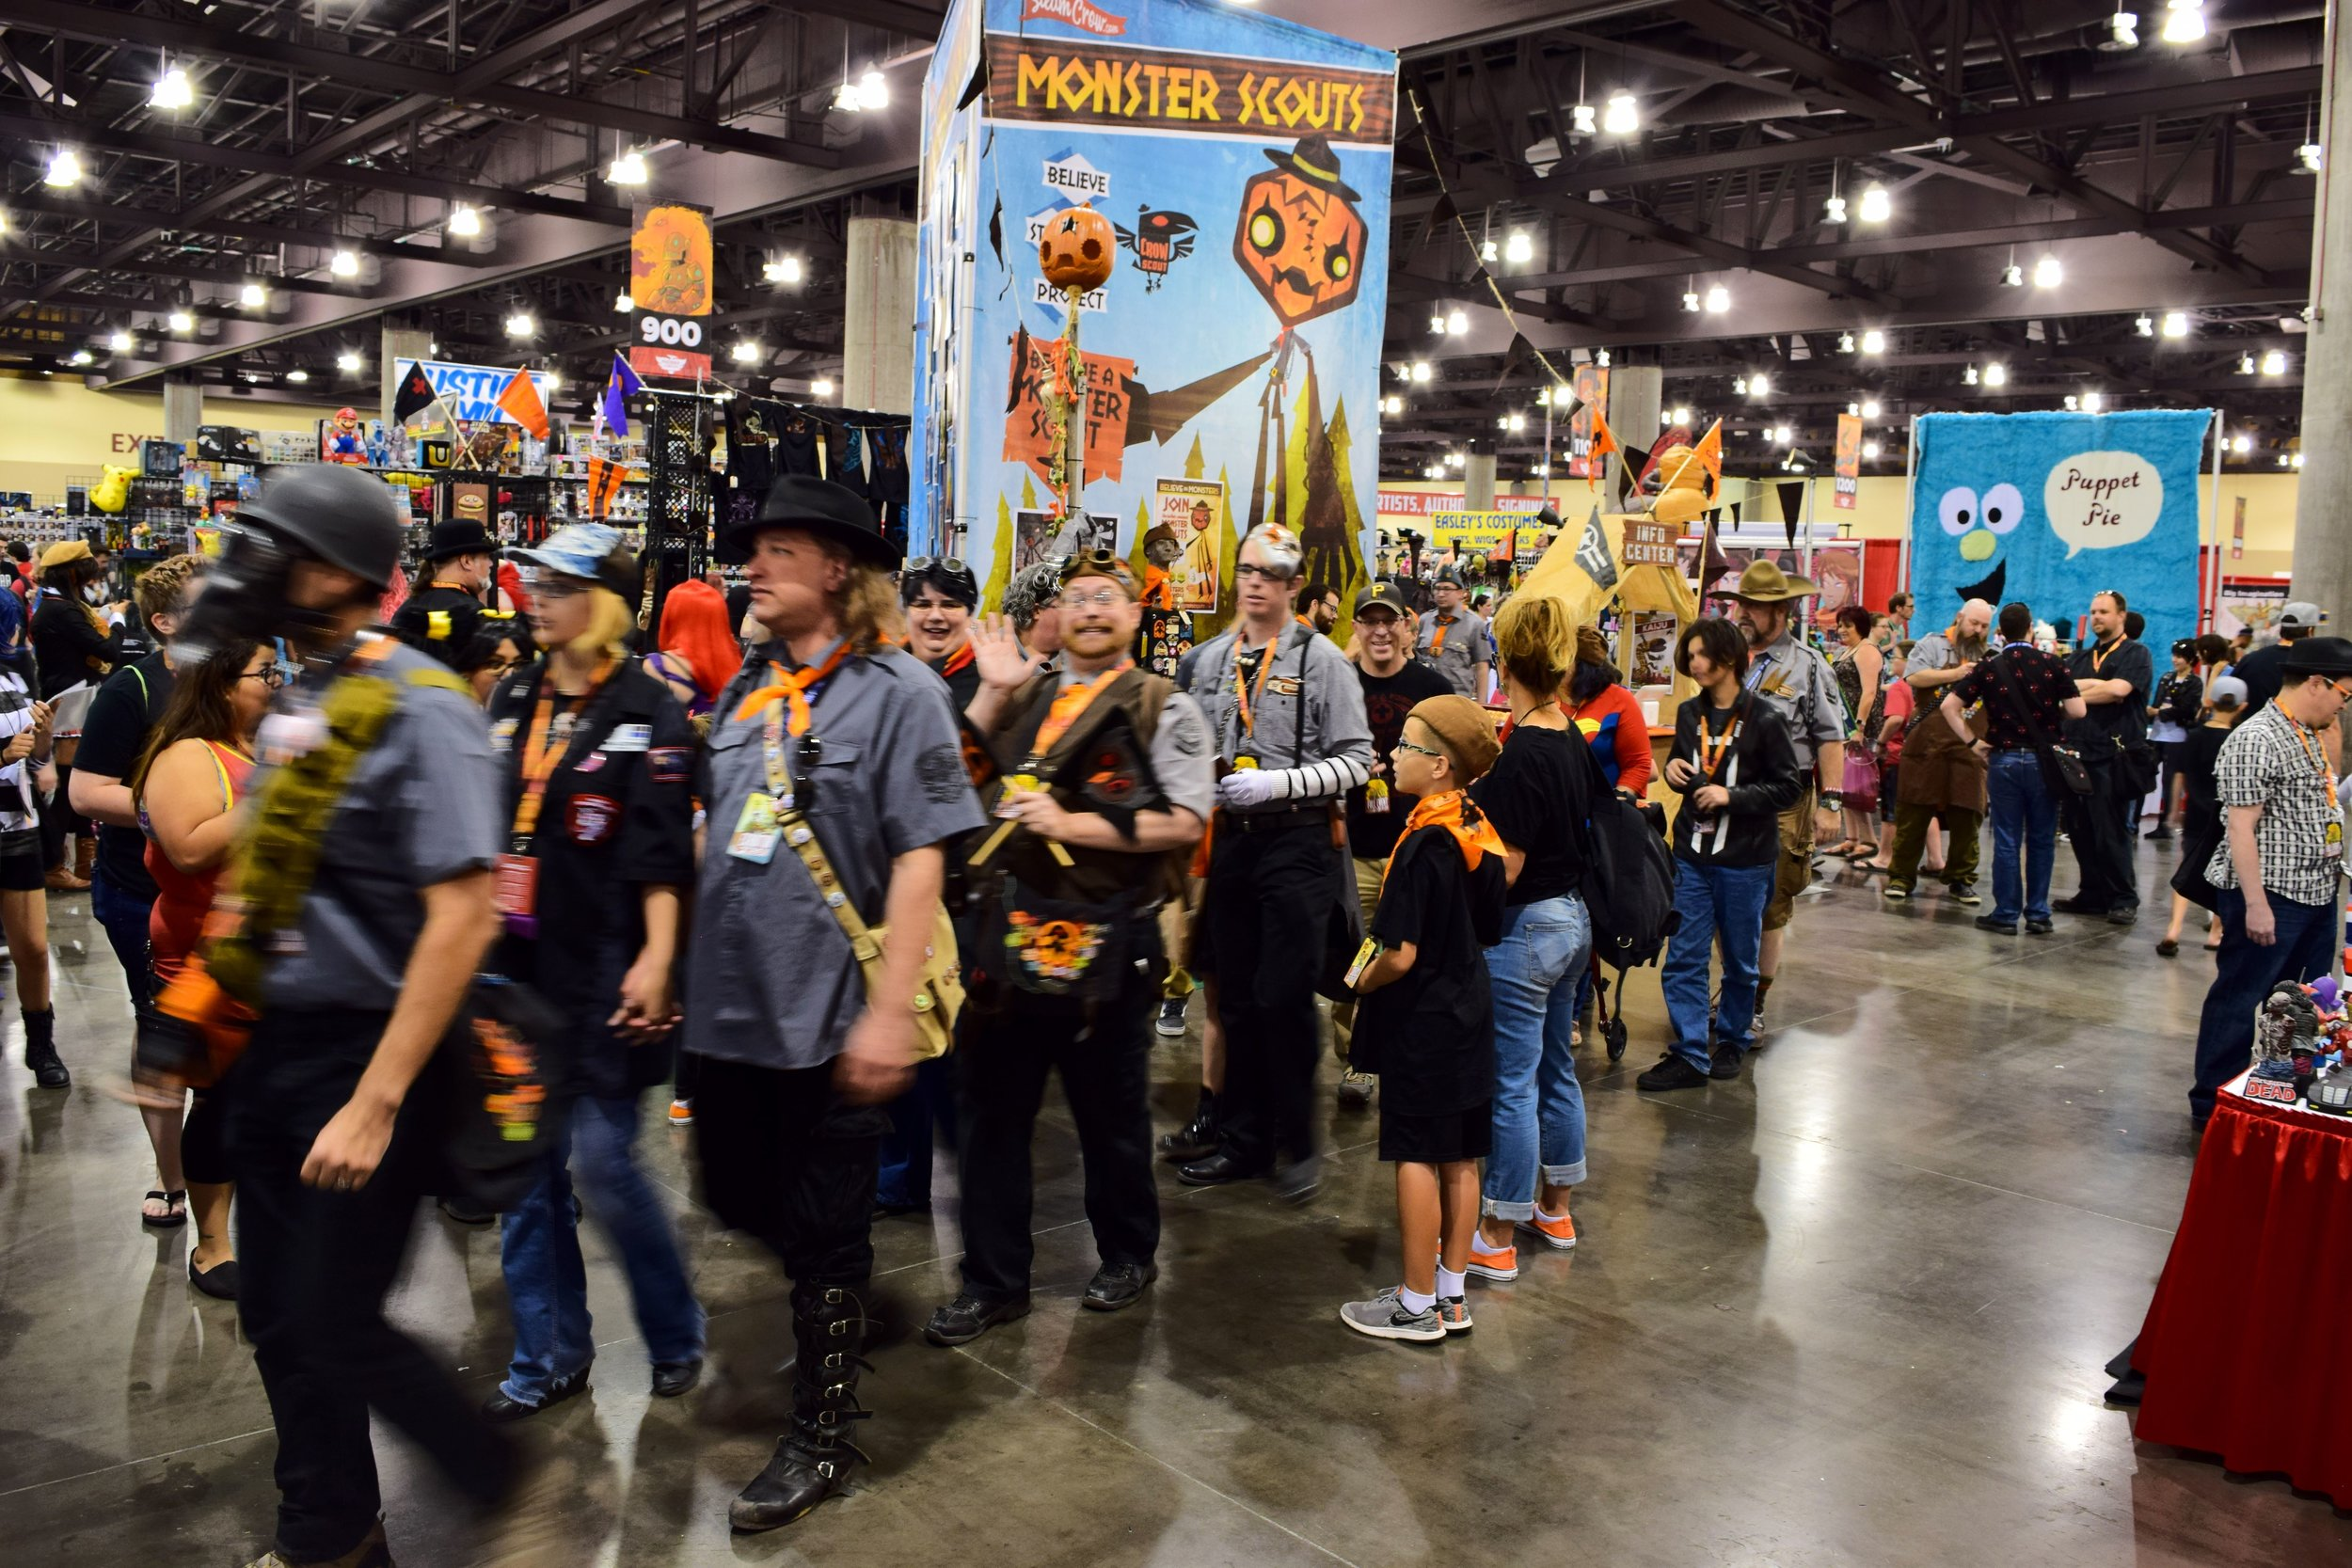 Monster Scouts on parade at Phoenix Comic Con 2017.